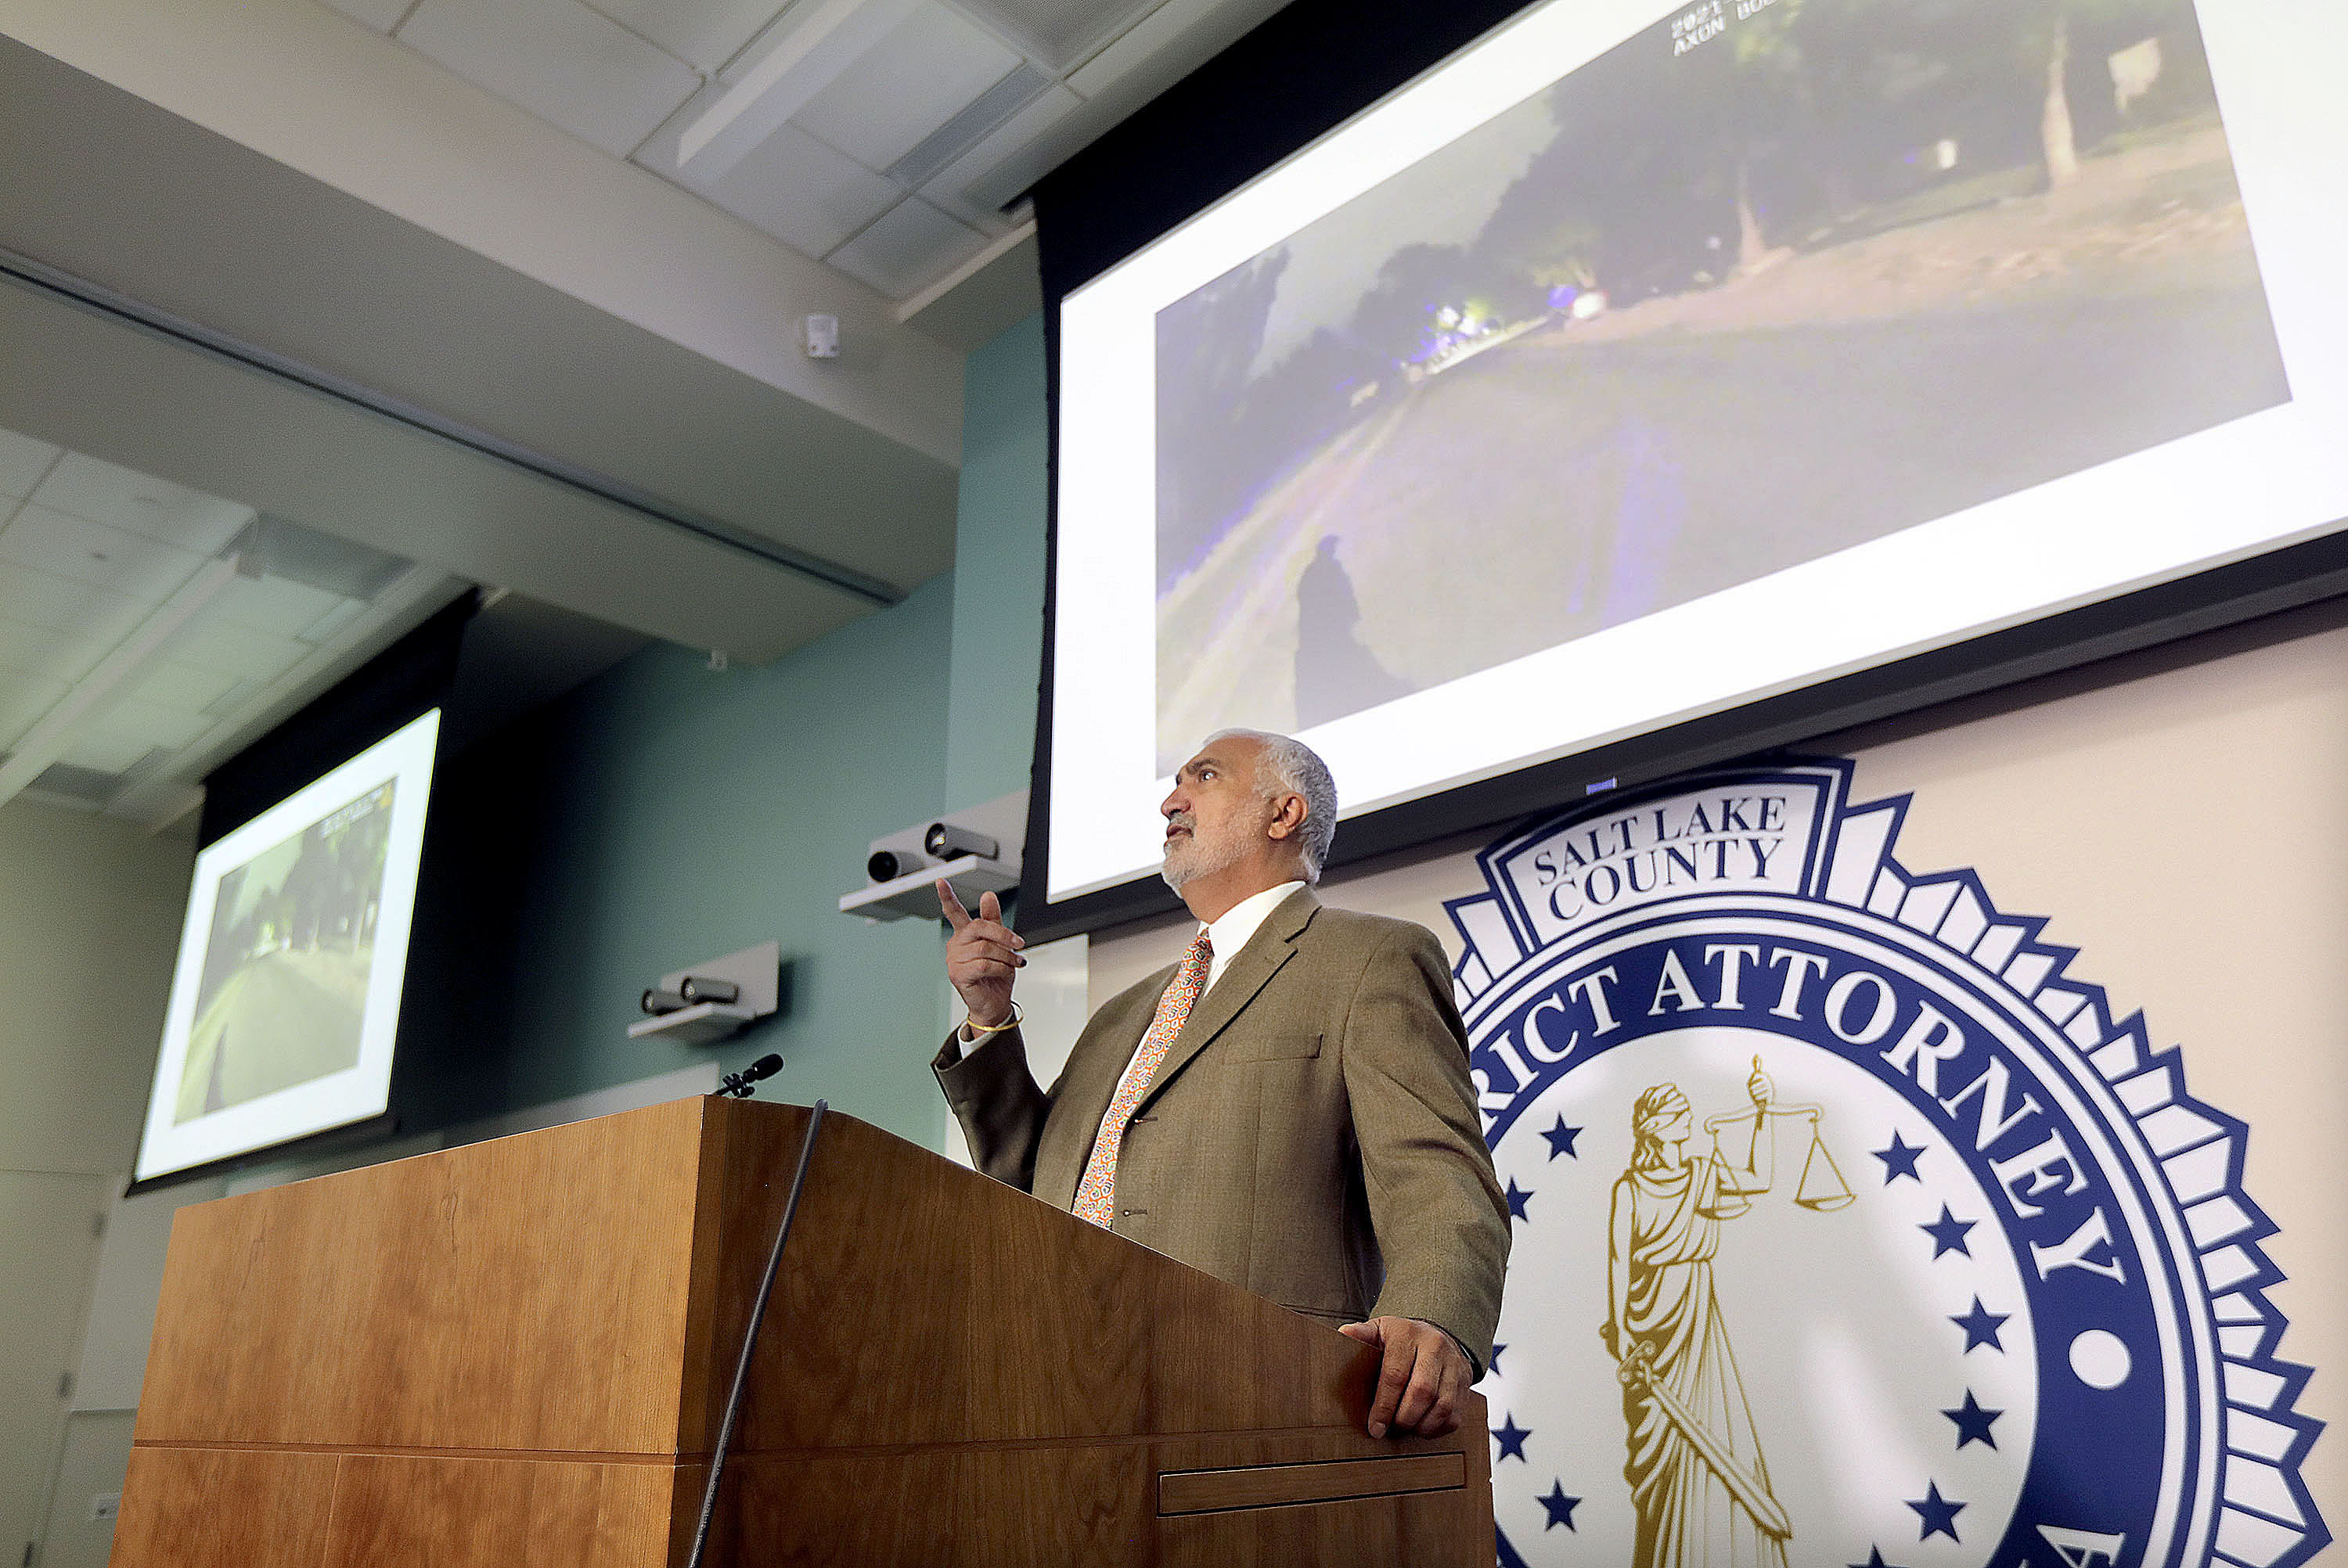 Salt Lake County District Attorney Sim Gill discusses speaks at a press conference about an officer-involved shooting.